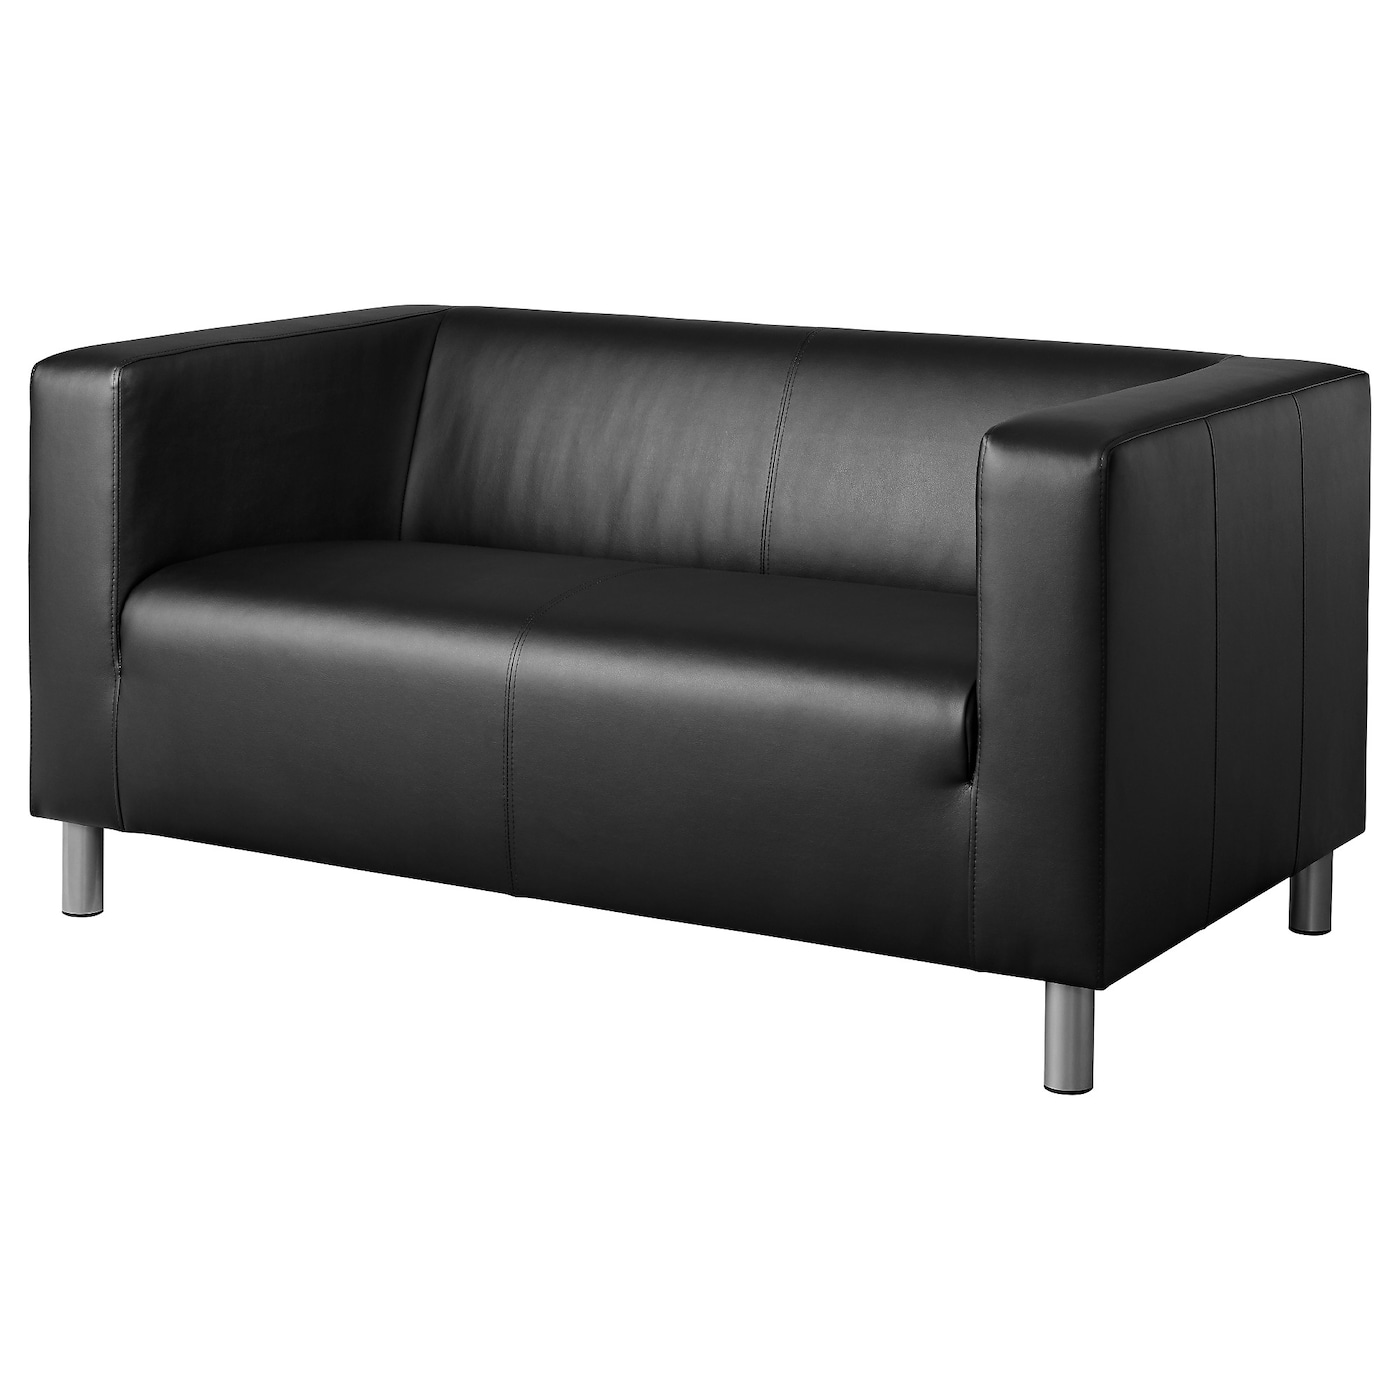 leather sofa two seater 2 seater sofas small seats ebay thesofa. Black Bedroom Furniture Sets. Home Design Ideas